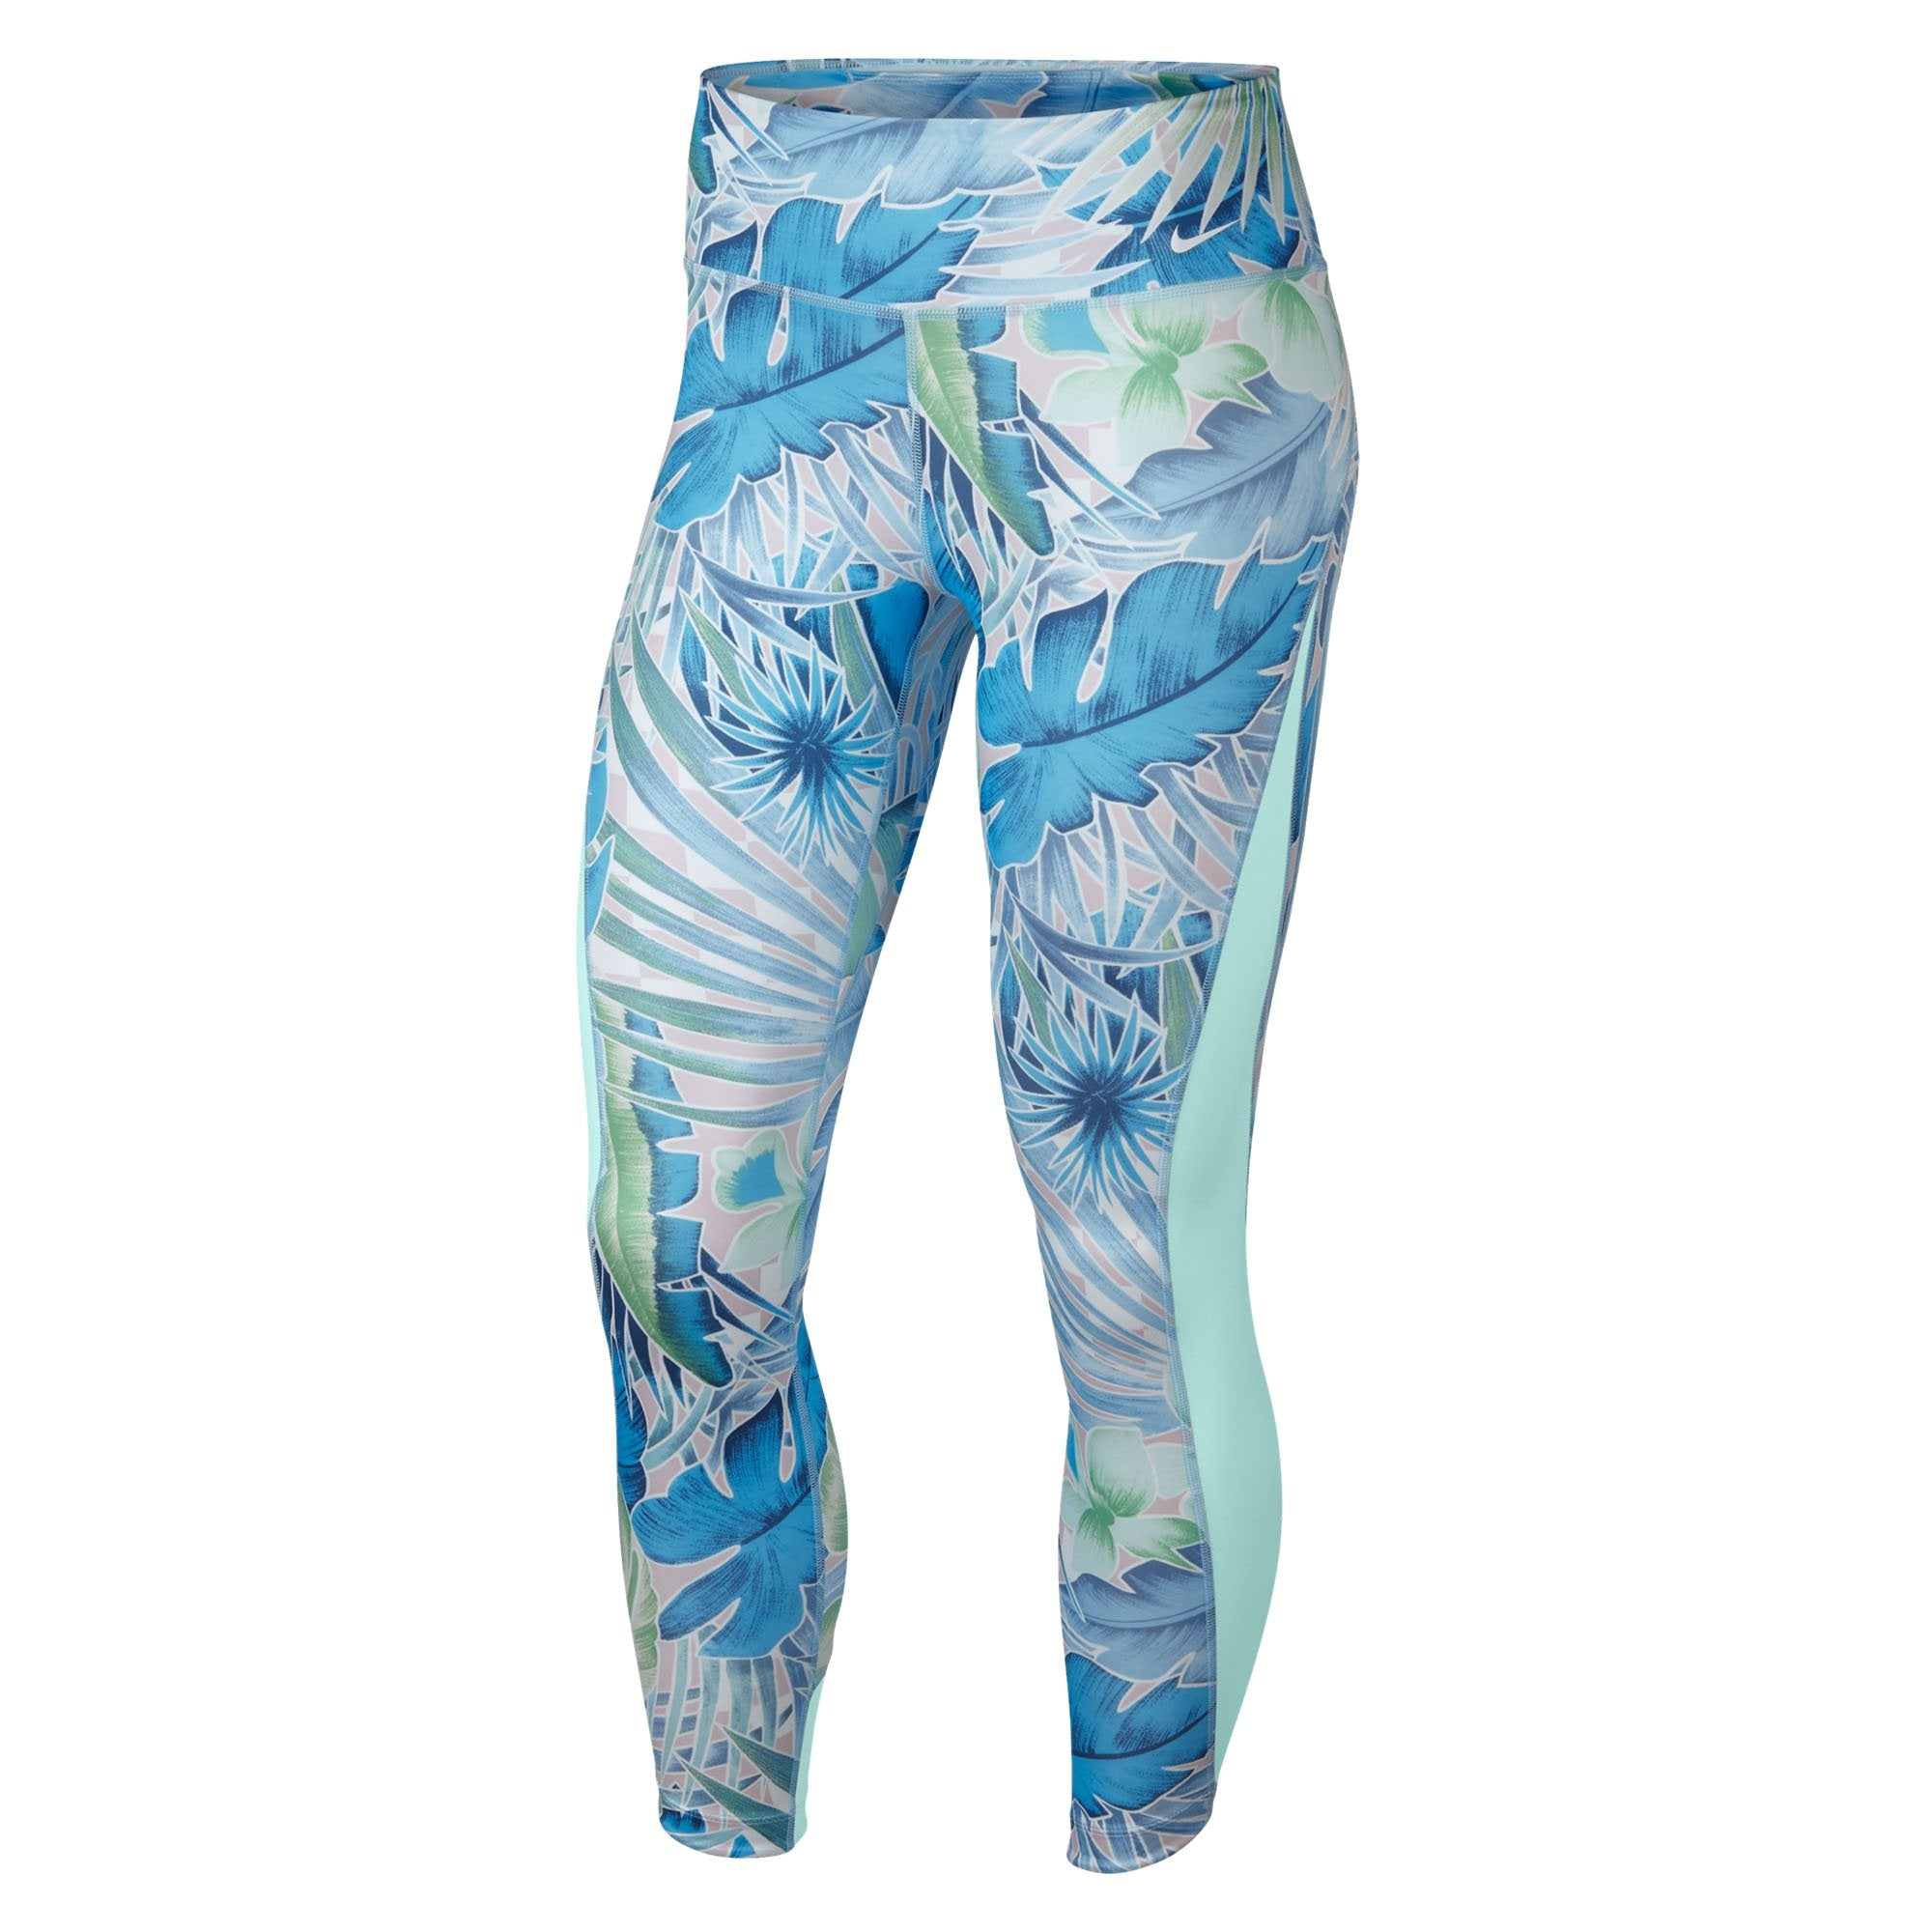 99649040a12d2 Buy Nike Women One 7/8 Hyper Fem Tights Online in Singapore | Royal  Sporting House